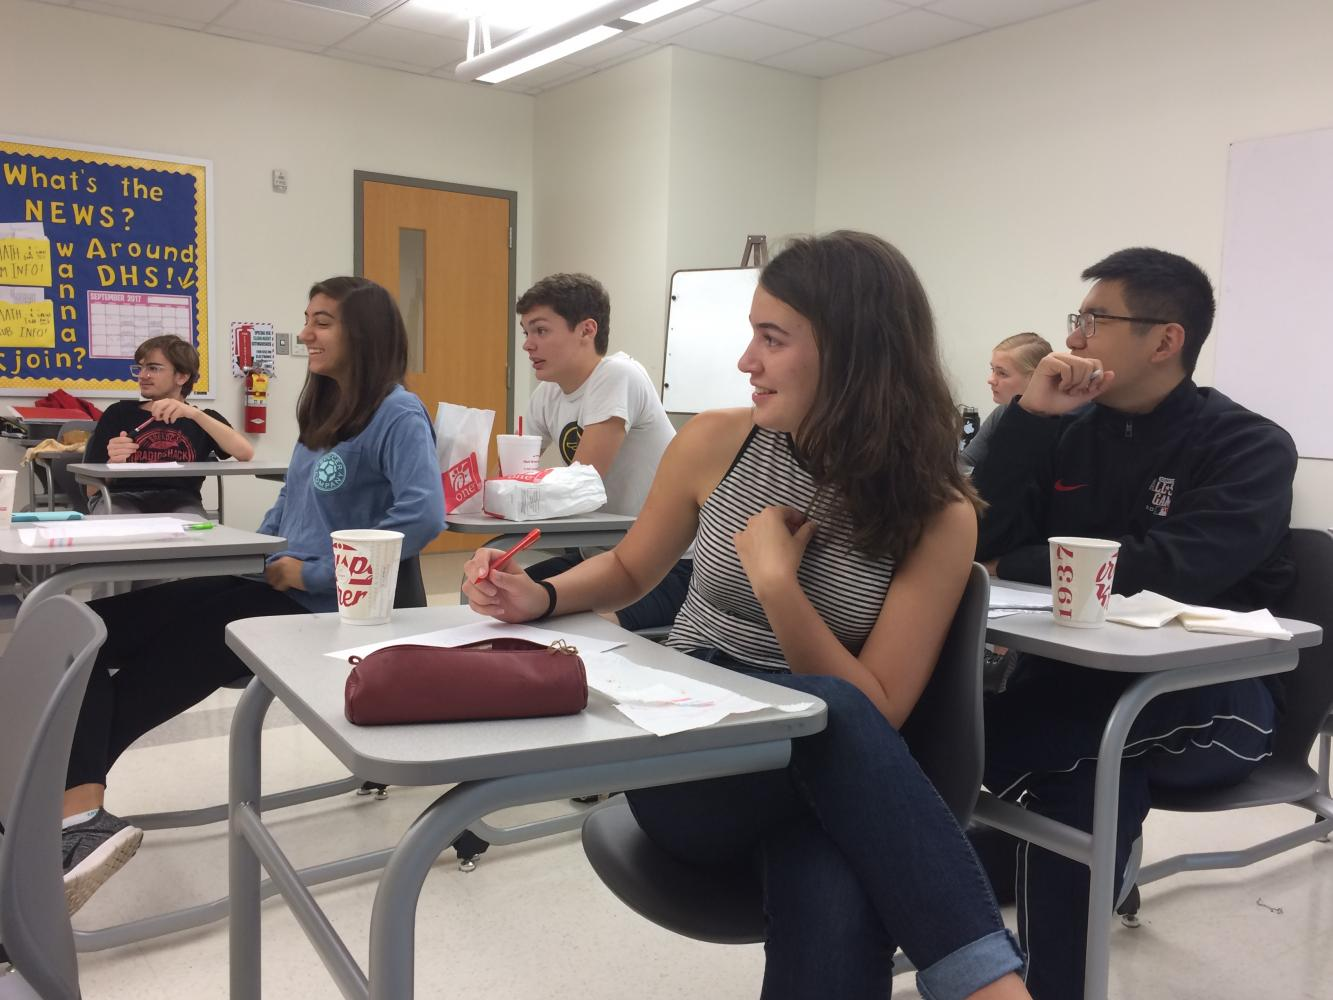 Junior Max Schneider, seniors Maya Karkare, Nate Rogers, Chiara Darnton and junior Ruiqi Zhang (left to right) follow along as Robert Schneider leads them through a complex number problem early in the morning on Sept. 7, 2017.